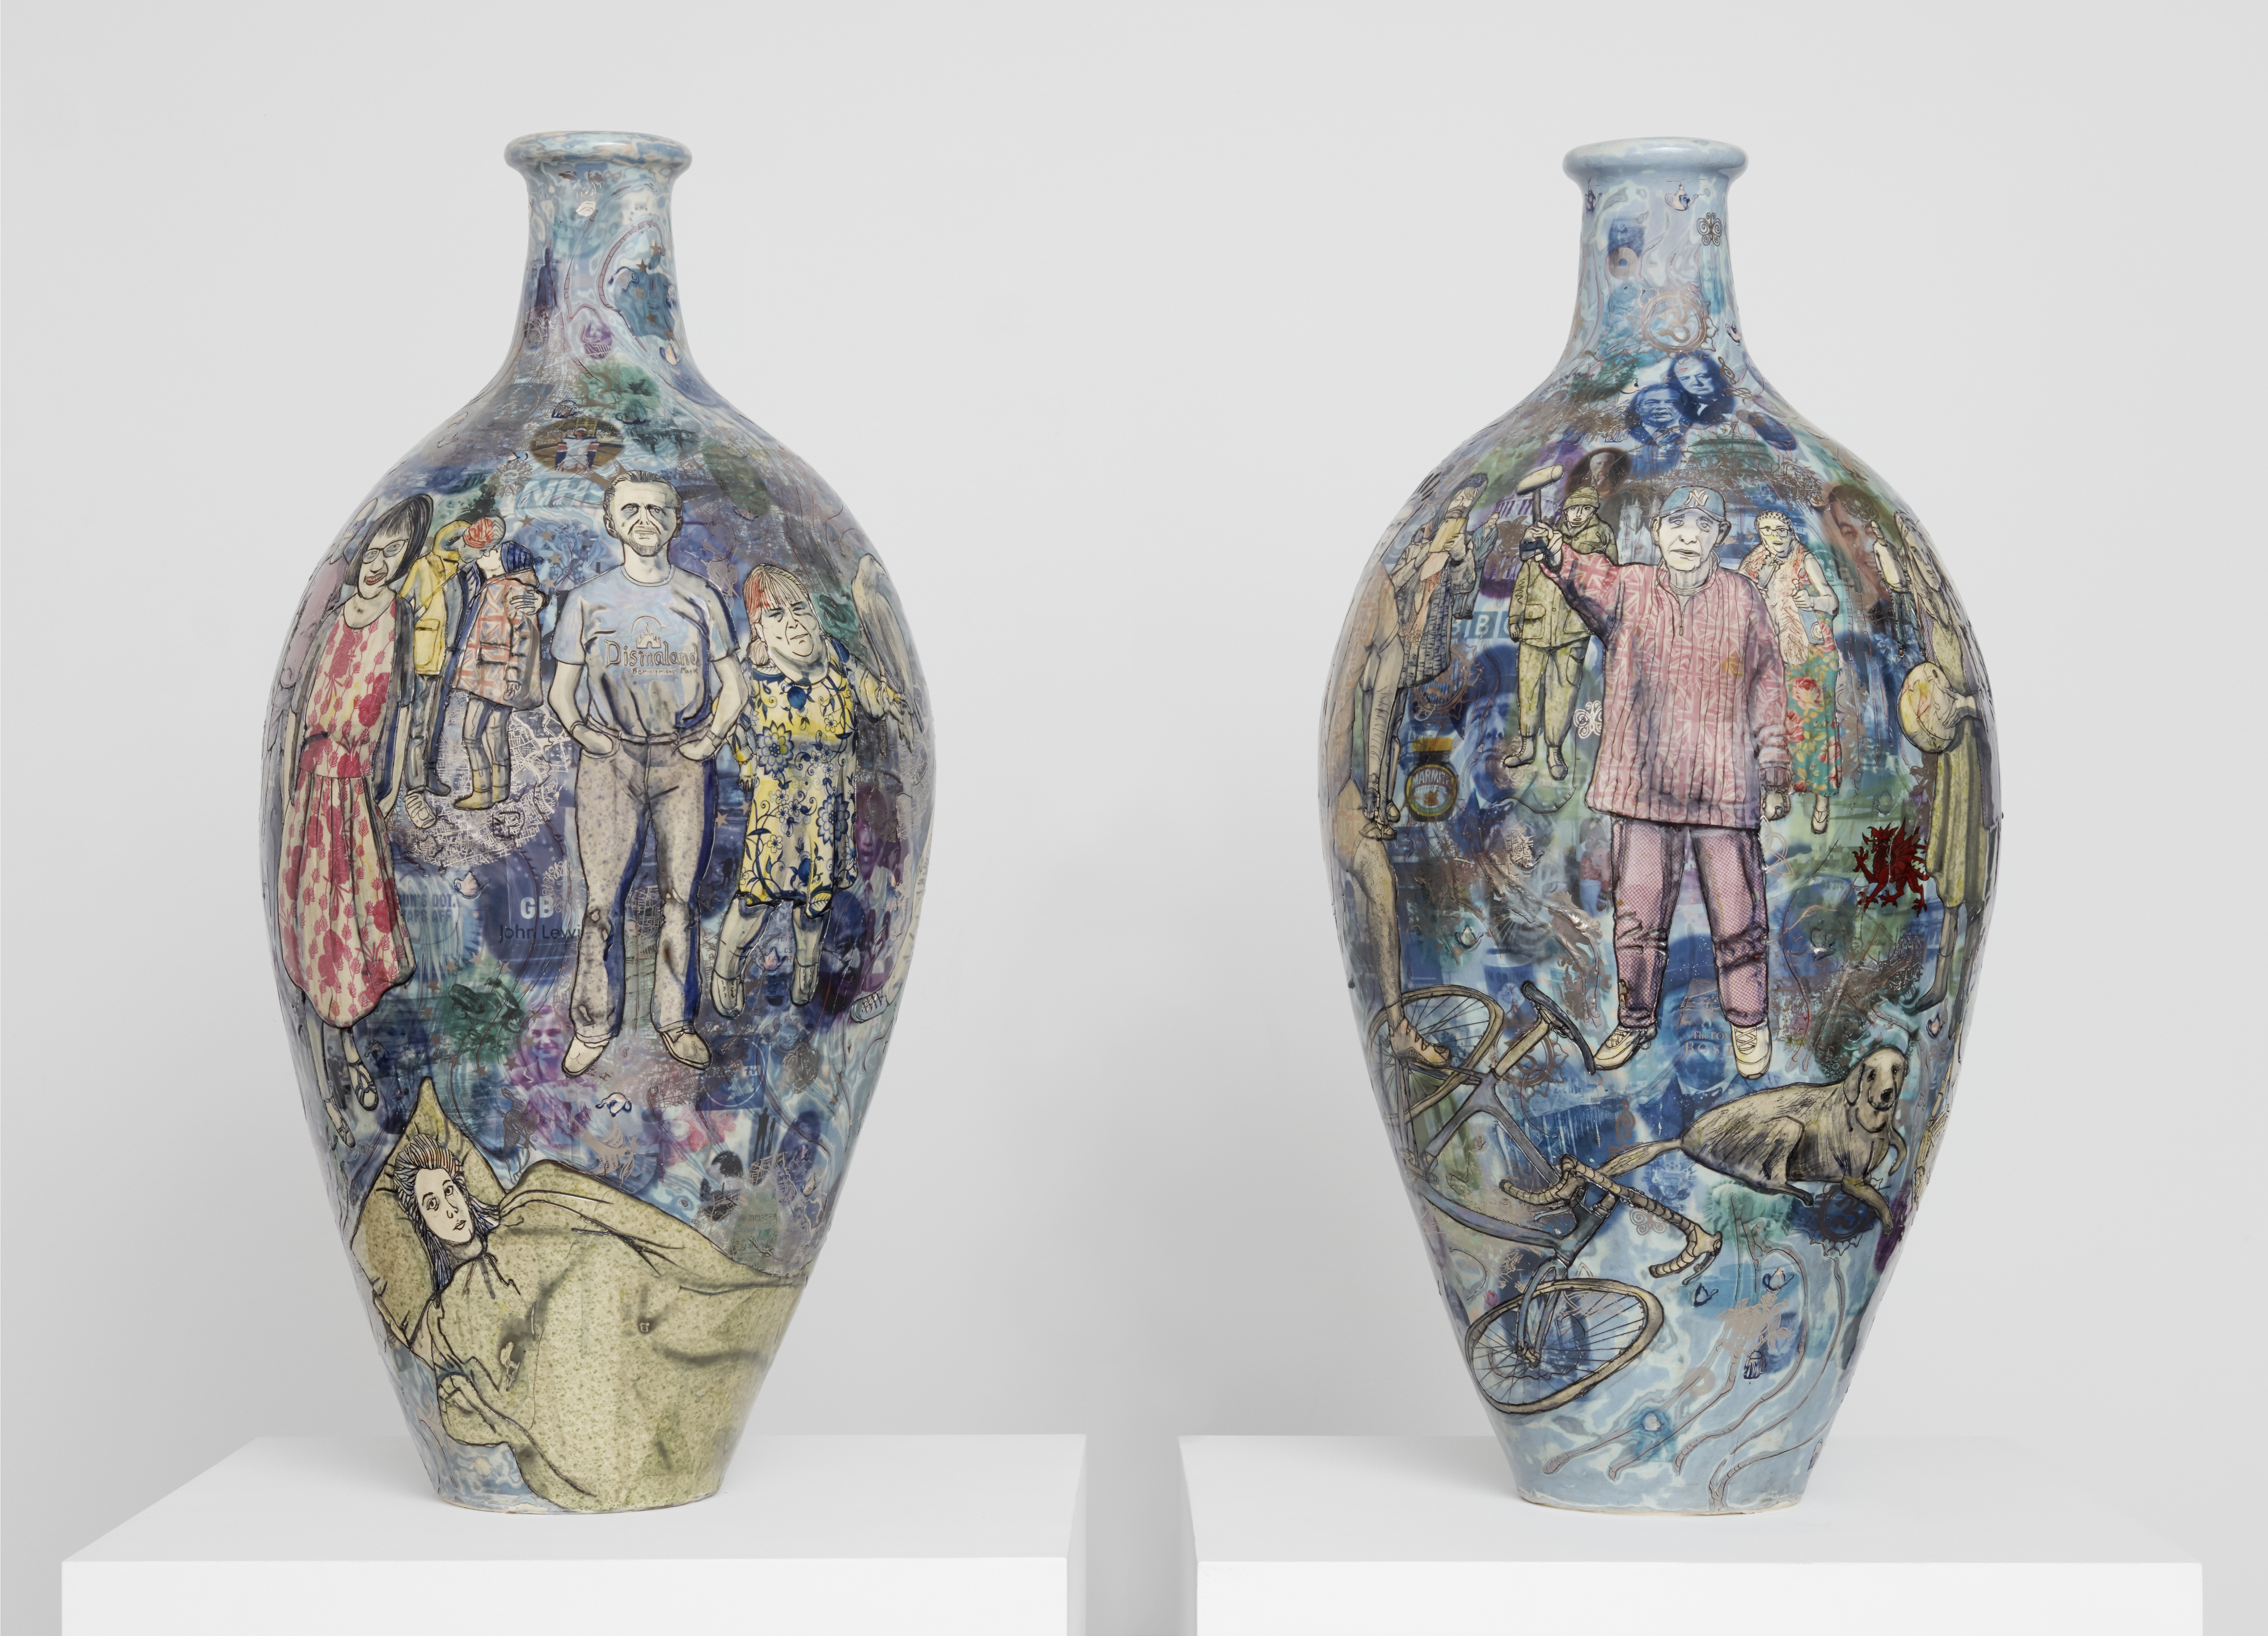 Grayson Perry Matching Pair, 2017 Glazed ceramic Diptych Each: 105 x 51 cm Courtesy the artist and Victoria Miro, London (photograph Robert Glowacki) © Grayson Perry